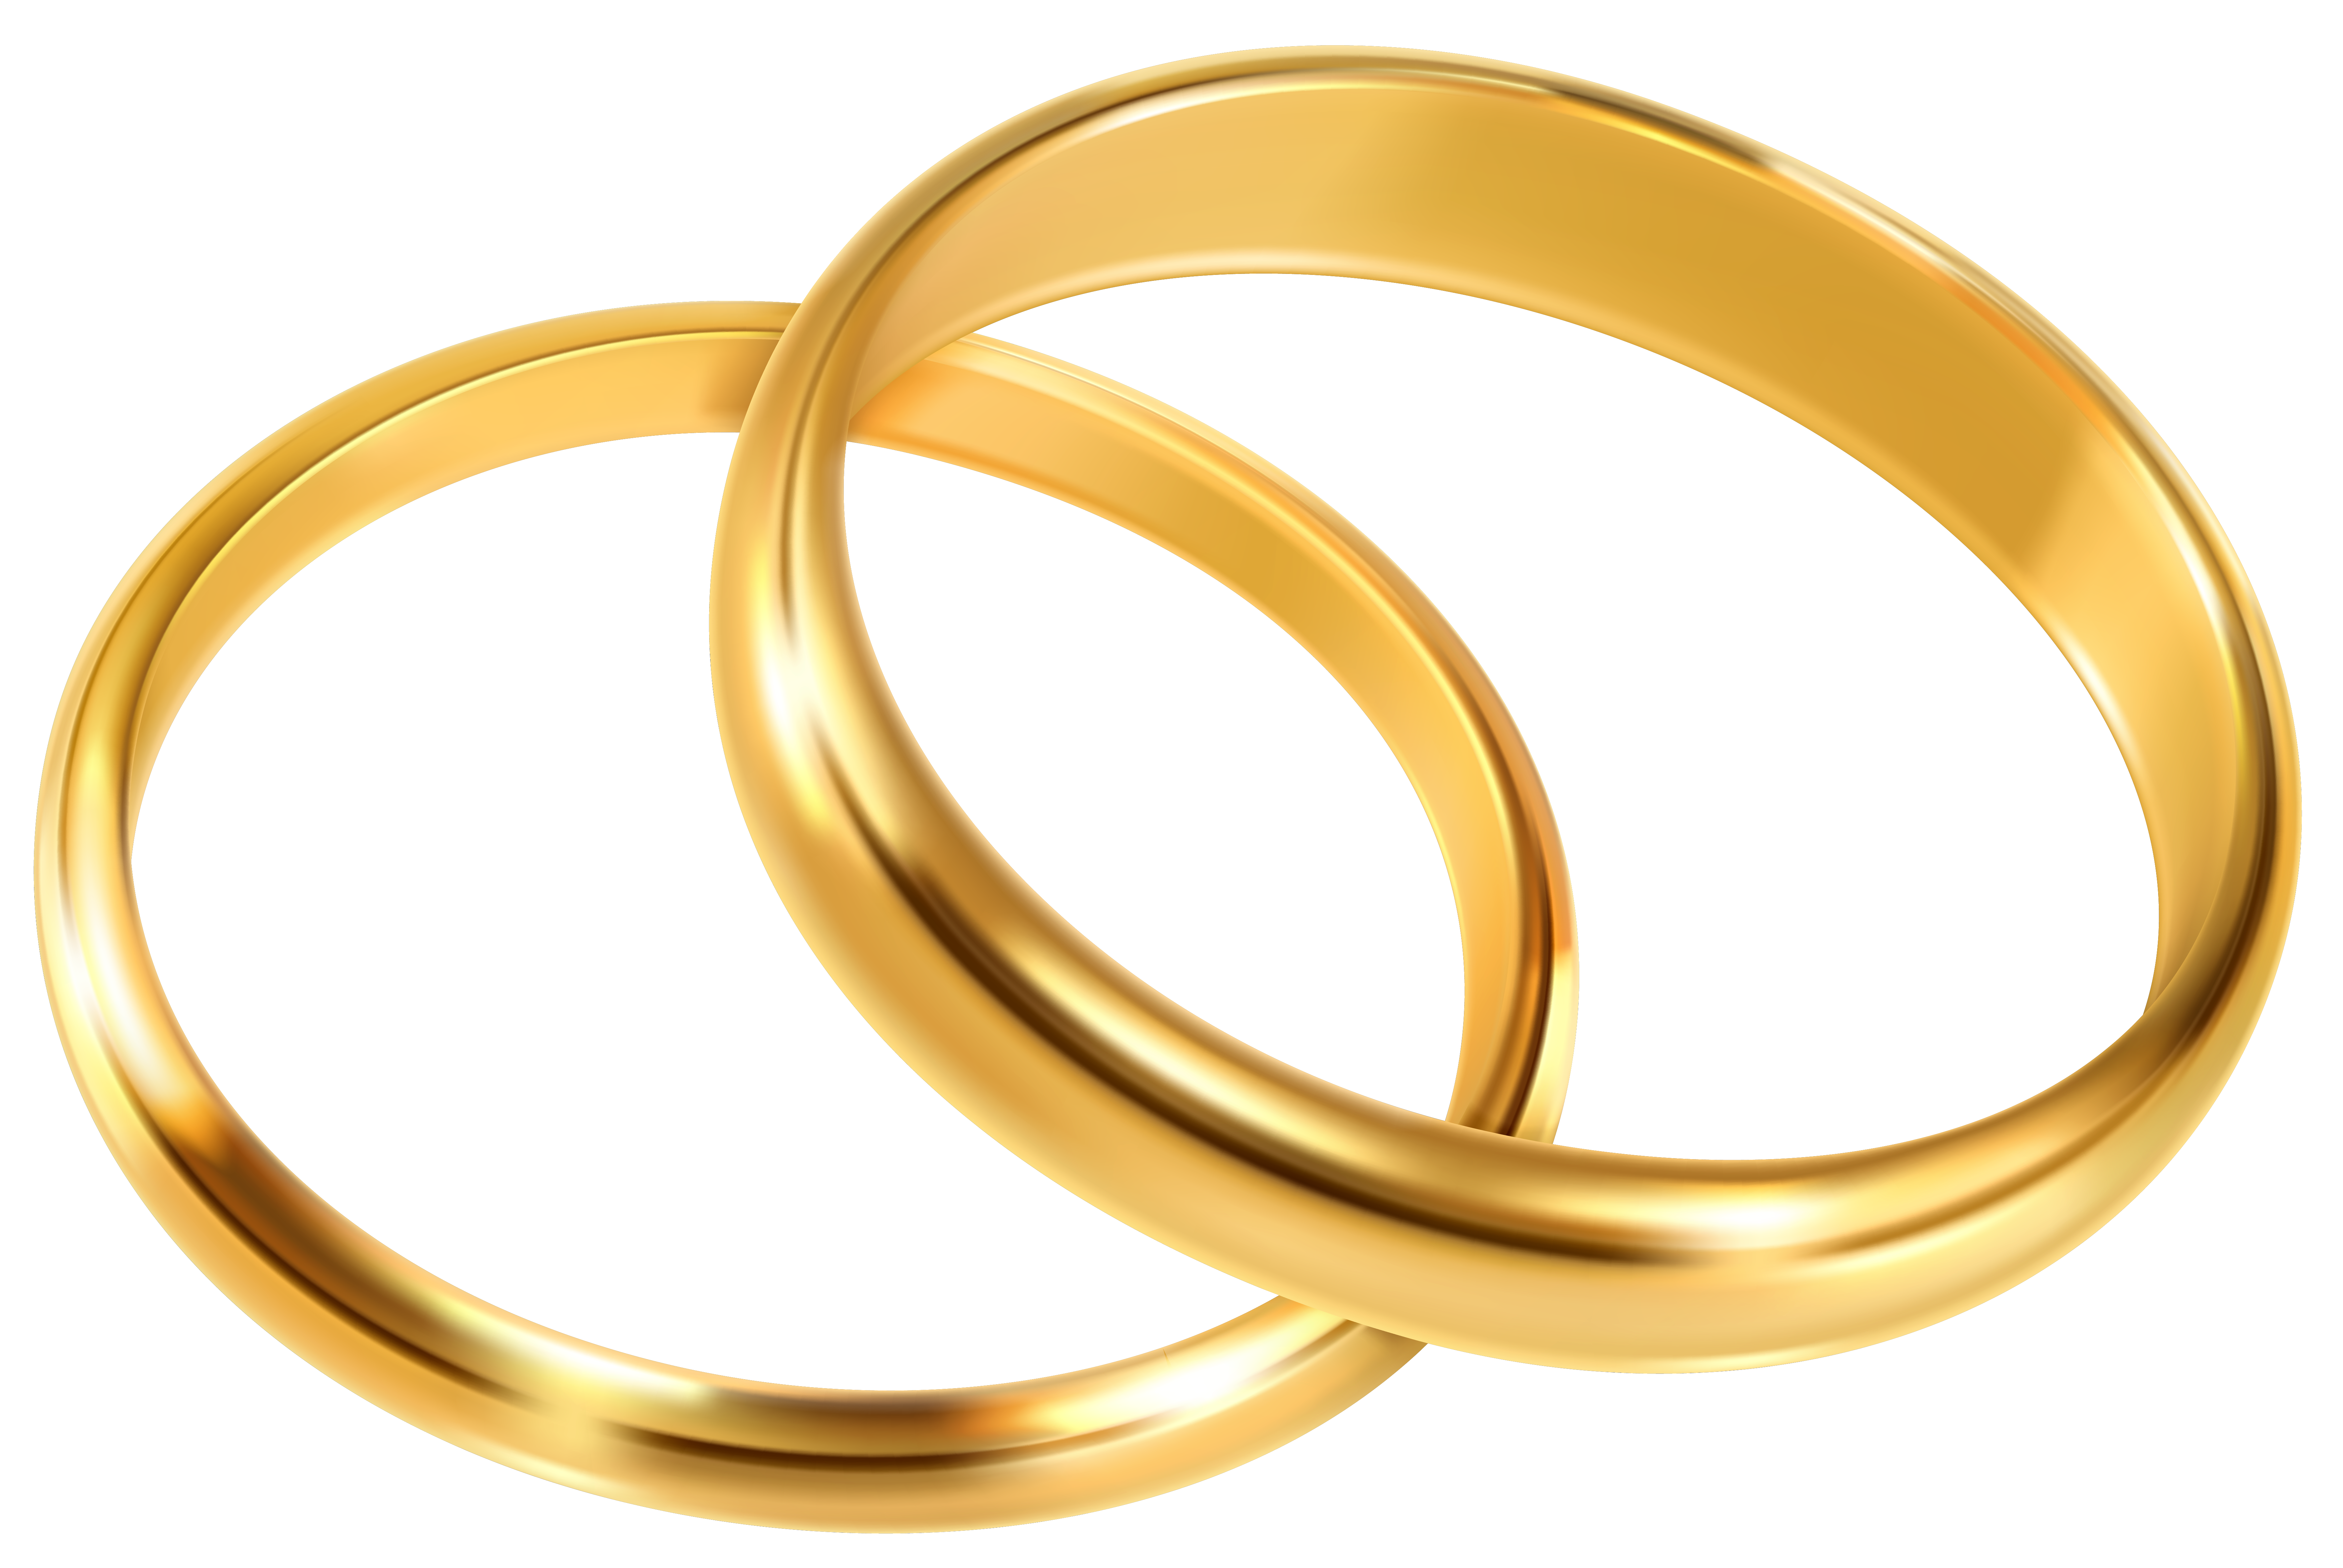 Engagement clipart clip art. Wedding ring rings png